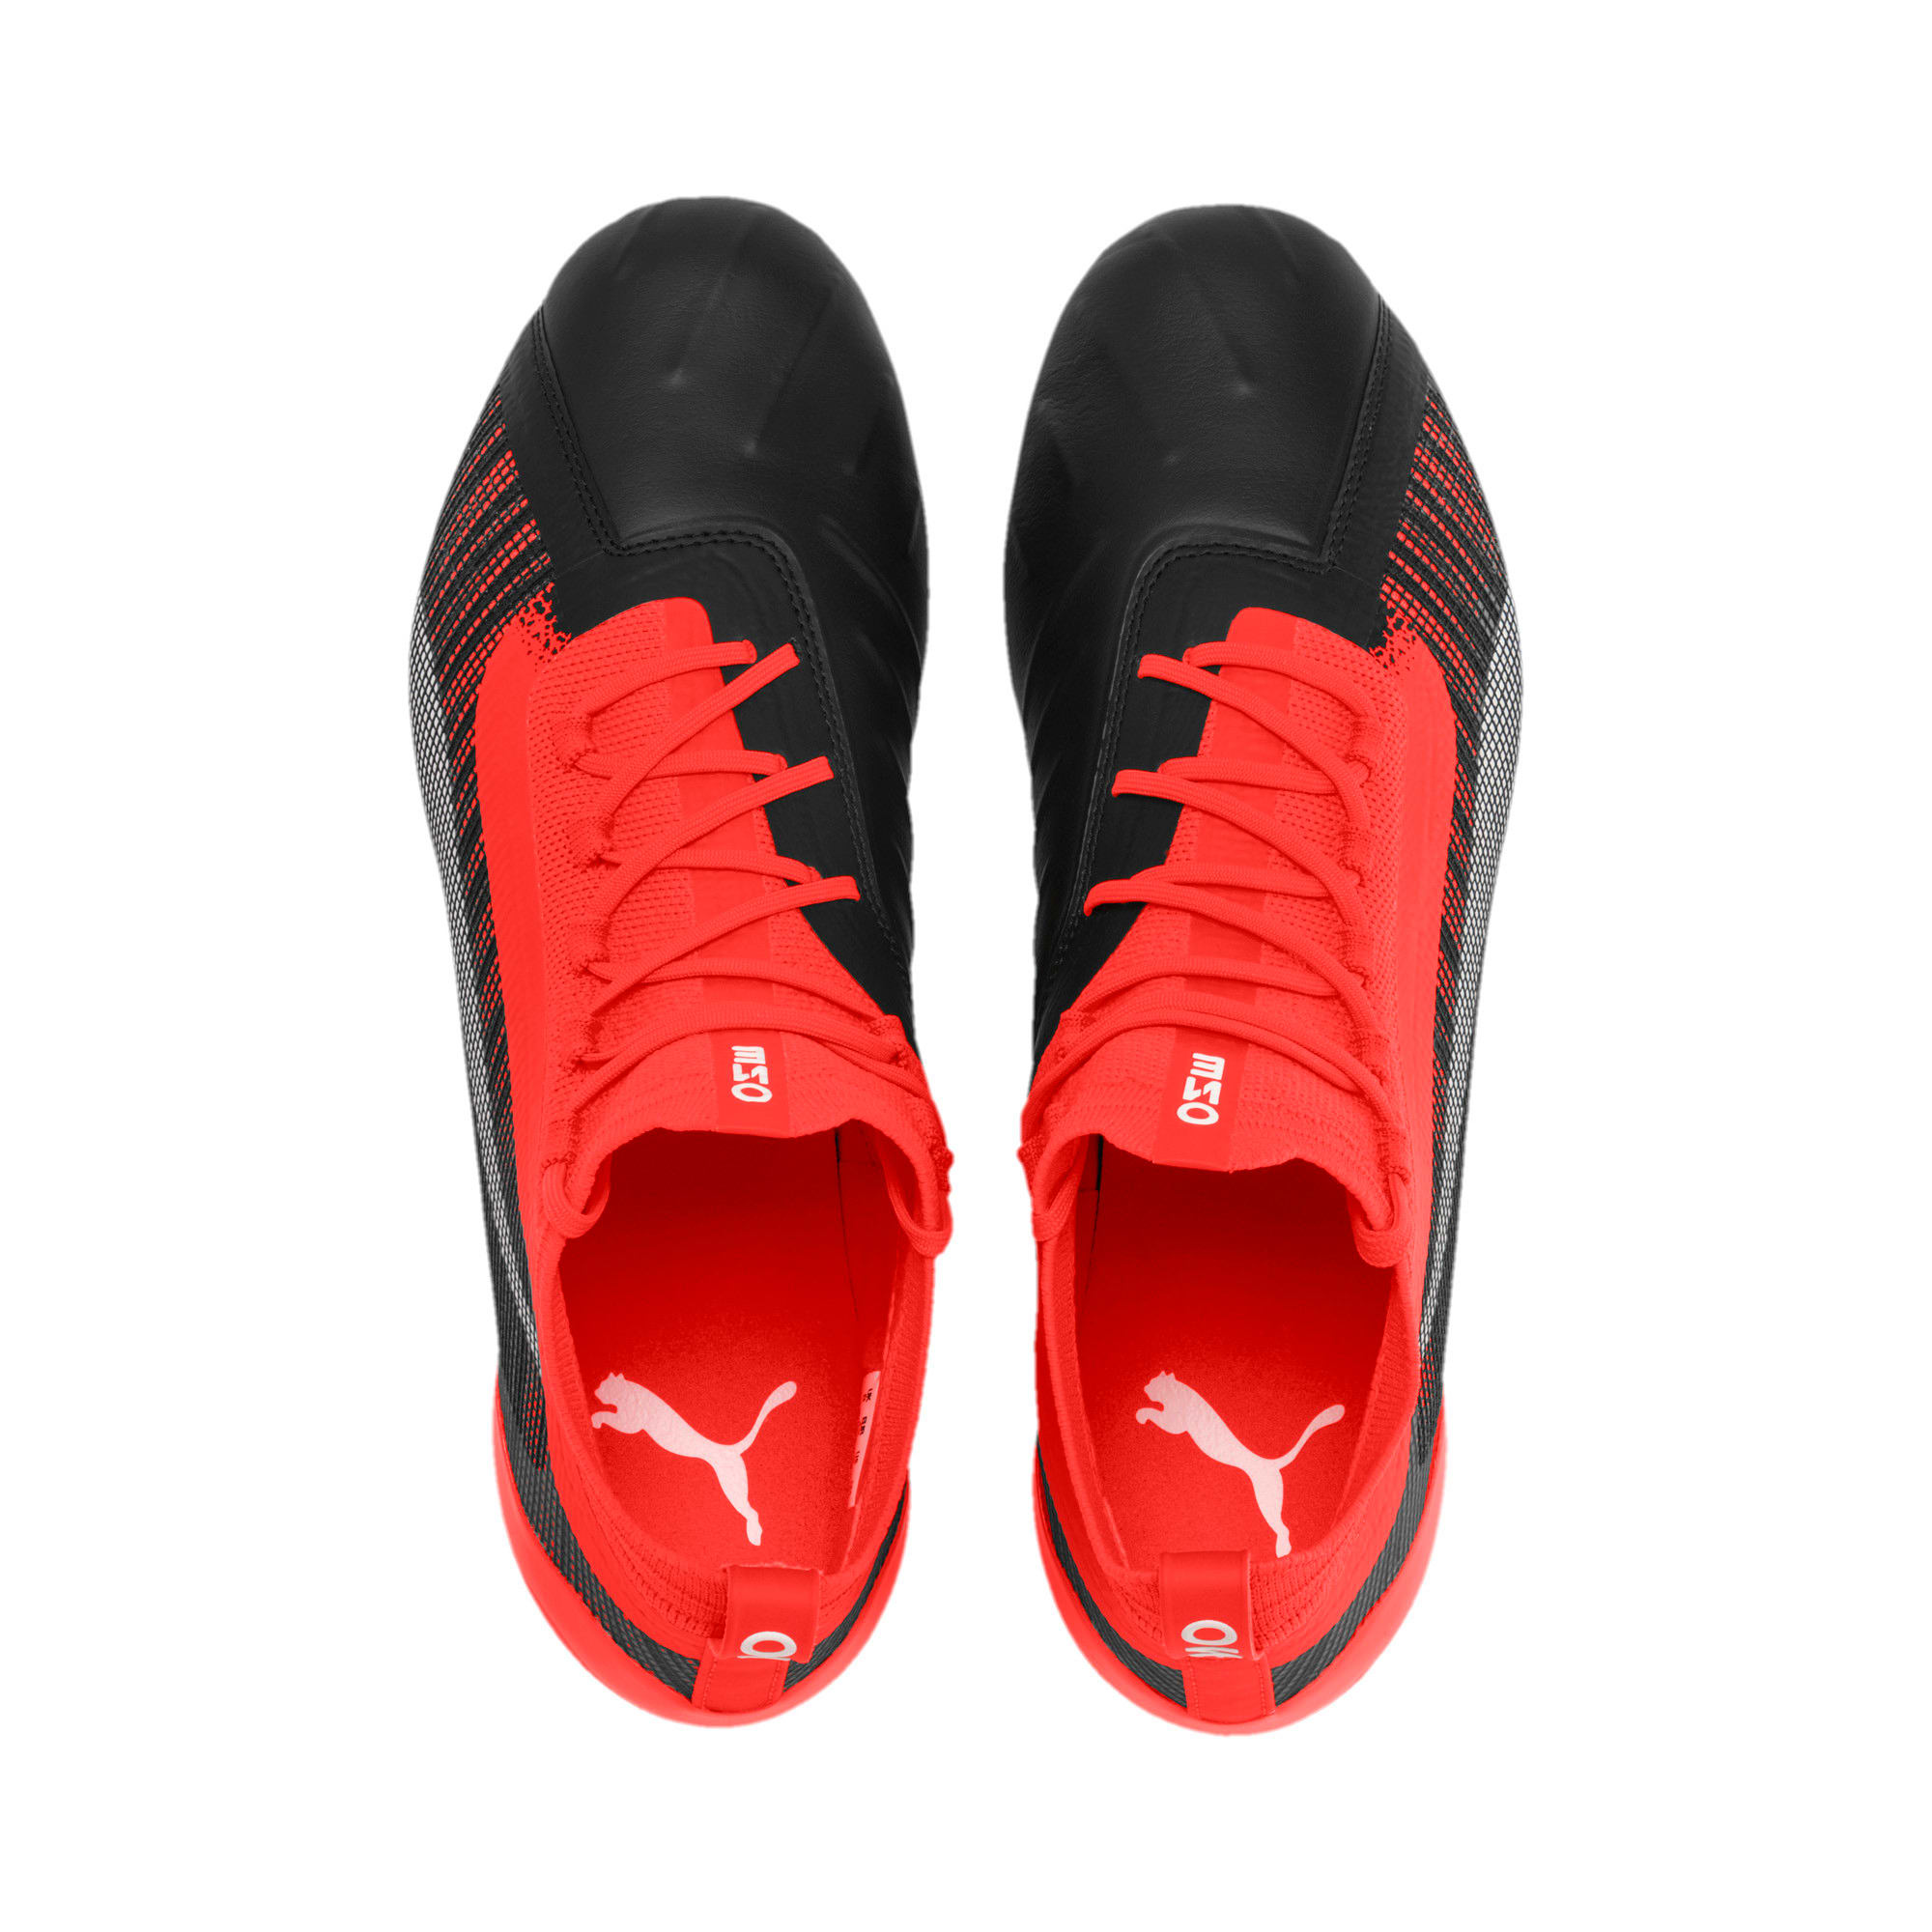 Thumbnail 7 of PUMA ONE 5.1 MxSG voetbalschoenen, Black-Nrgy Red-Aged Silver, medium